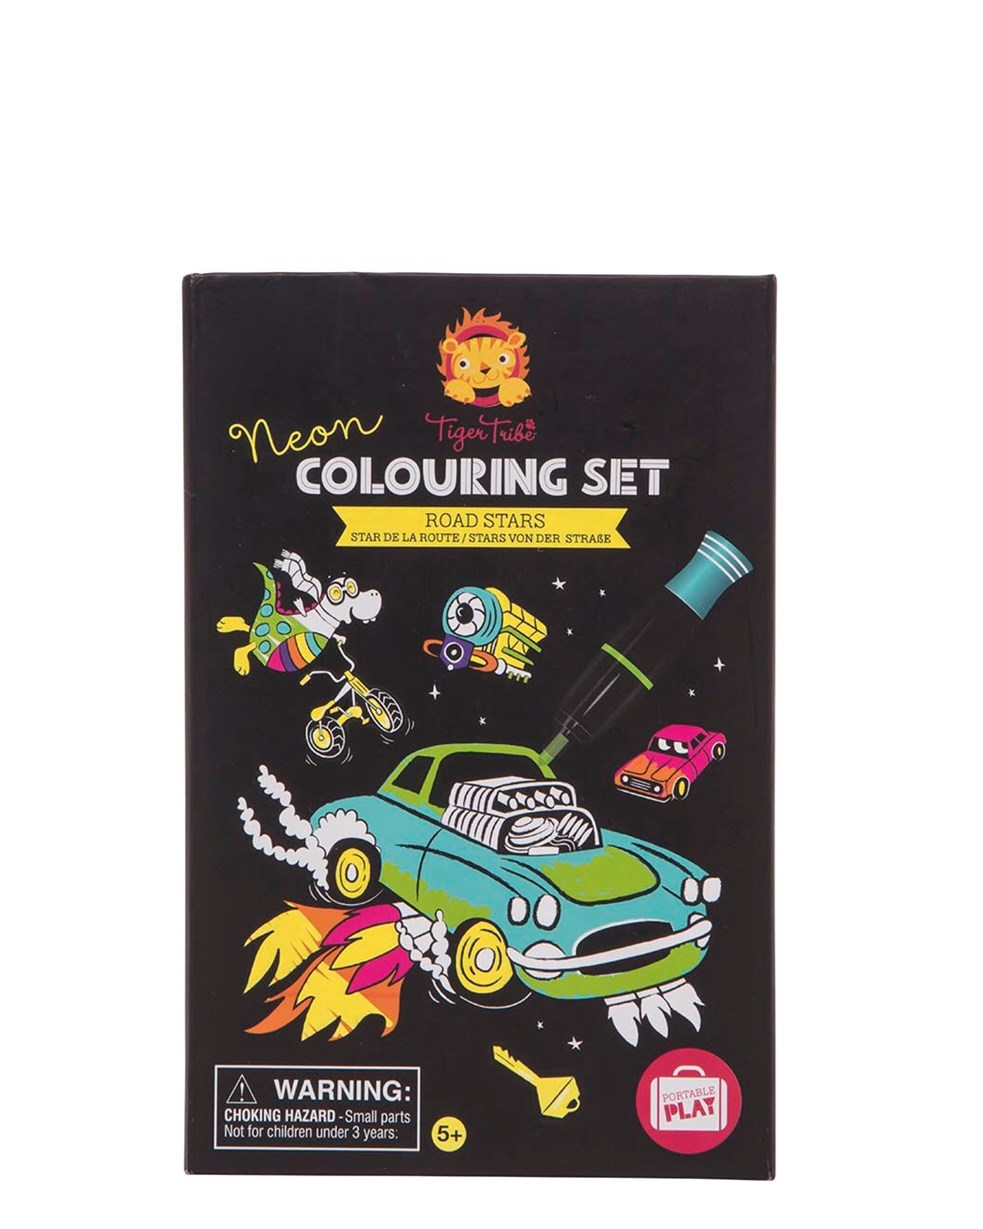 Tiger Tribe Neon Coloring Set - Road Stars